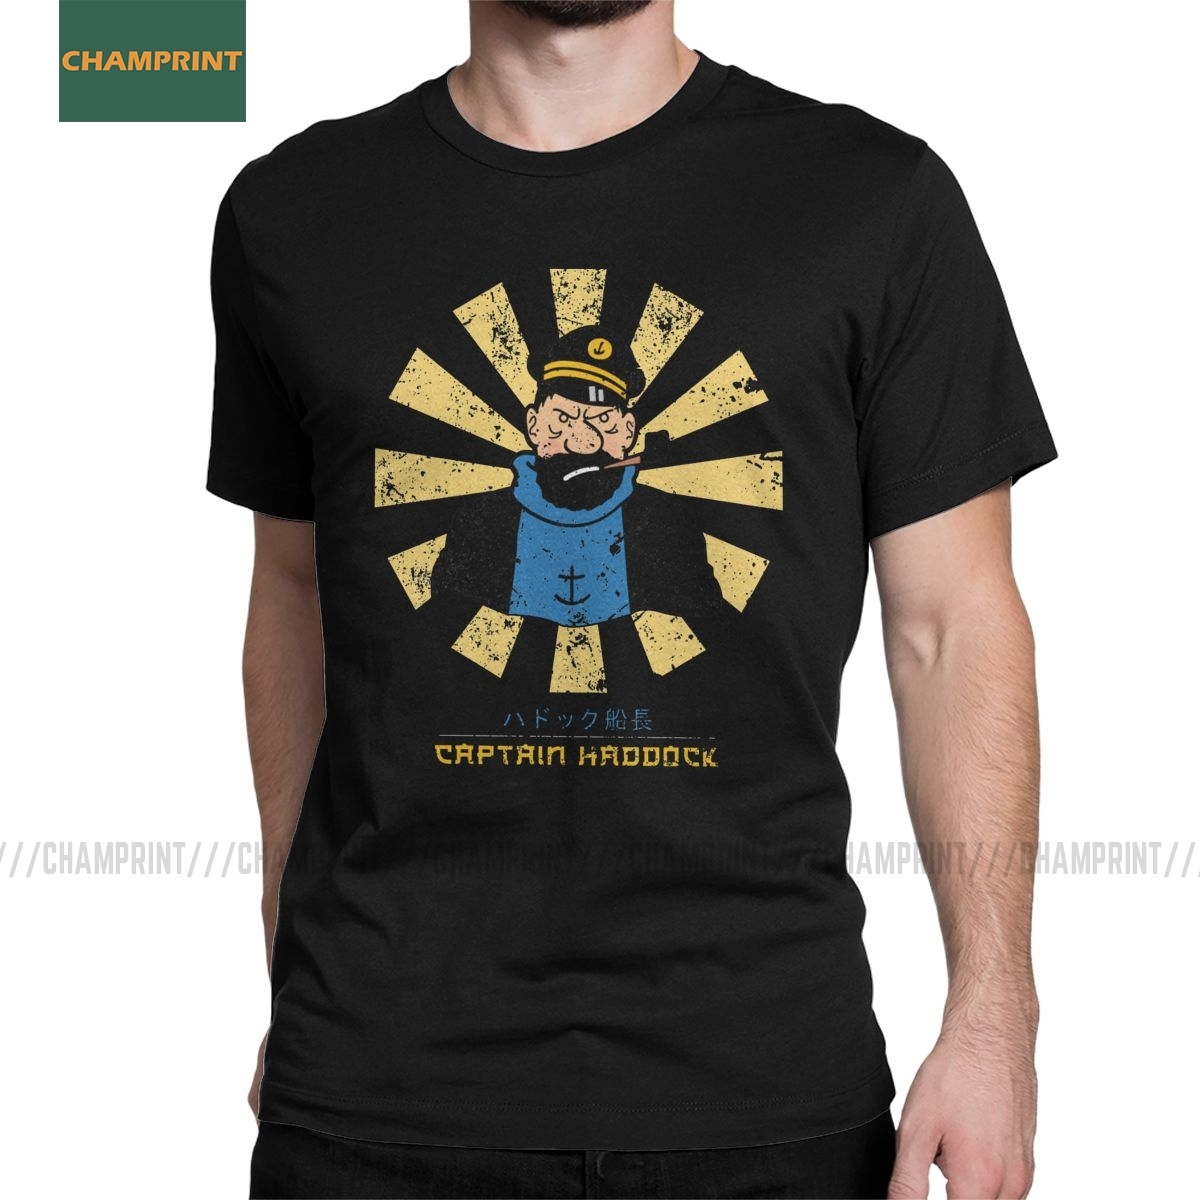 Captain Haddock Retro Japanese The Adventures Of Tintin T Shirt Men Cotton T-Shirts Herge Comic Snowy  Dog Tees Short Sleeve